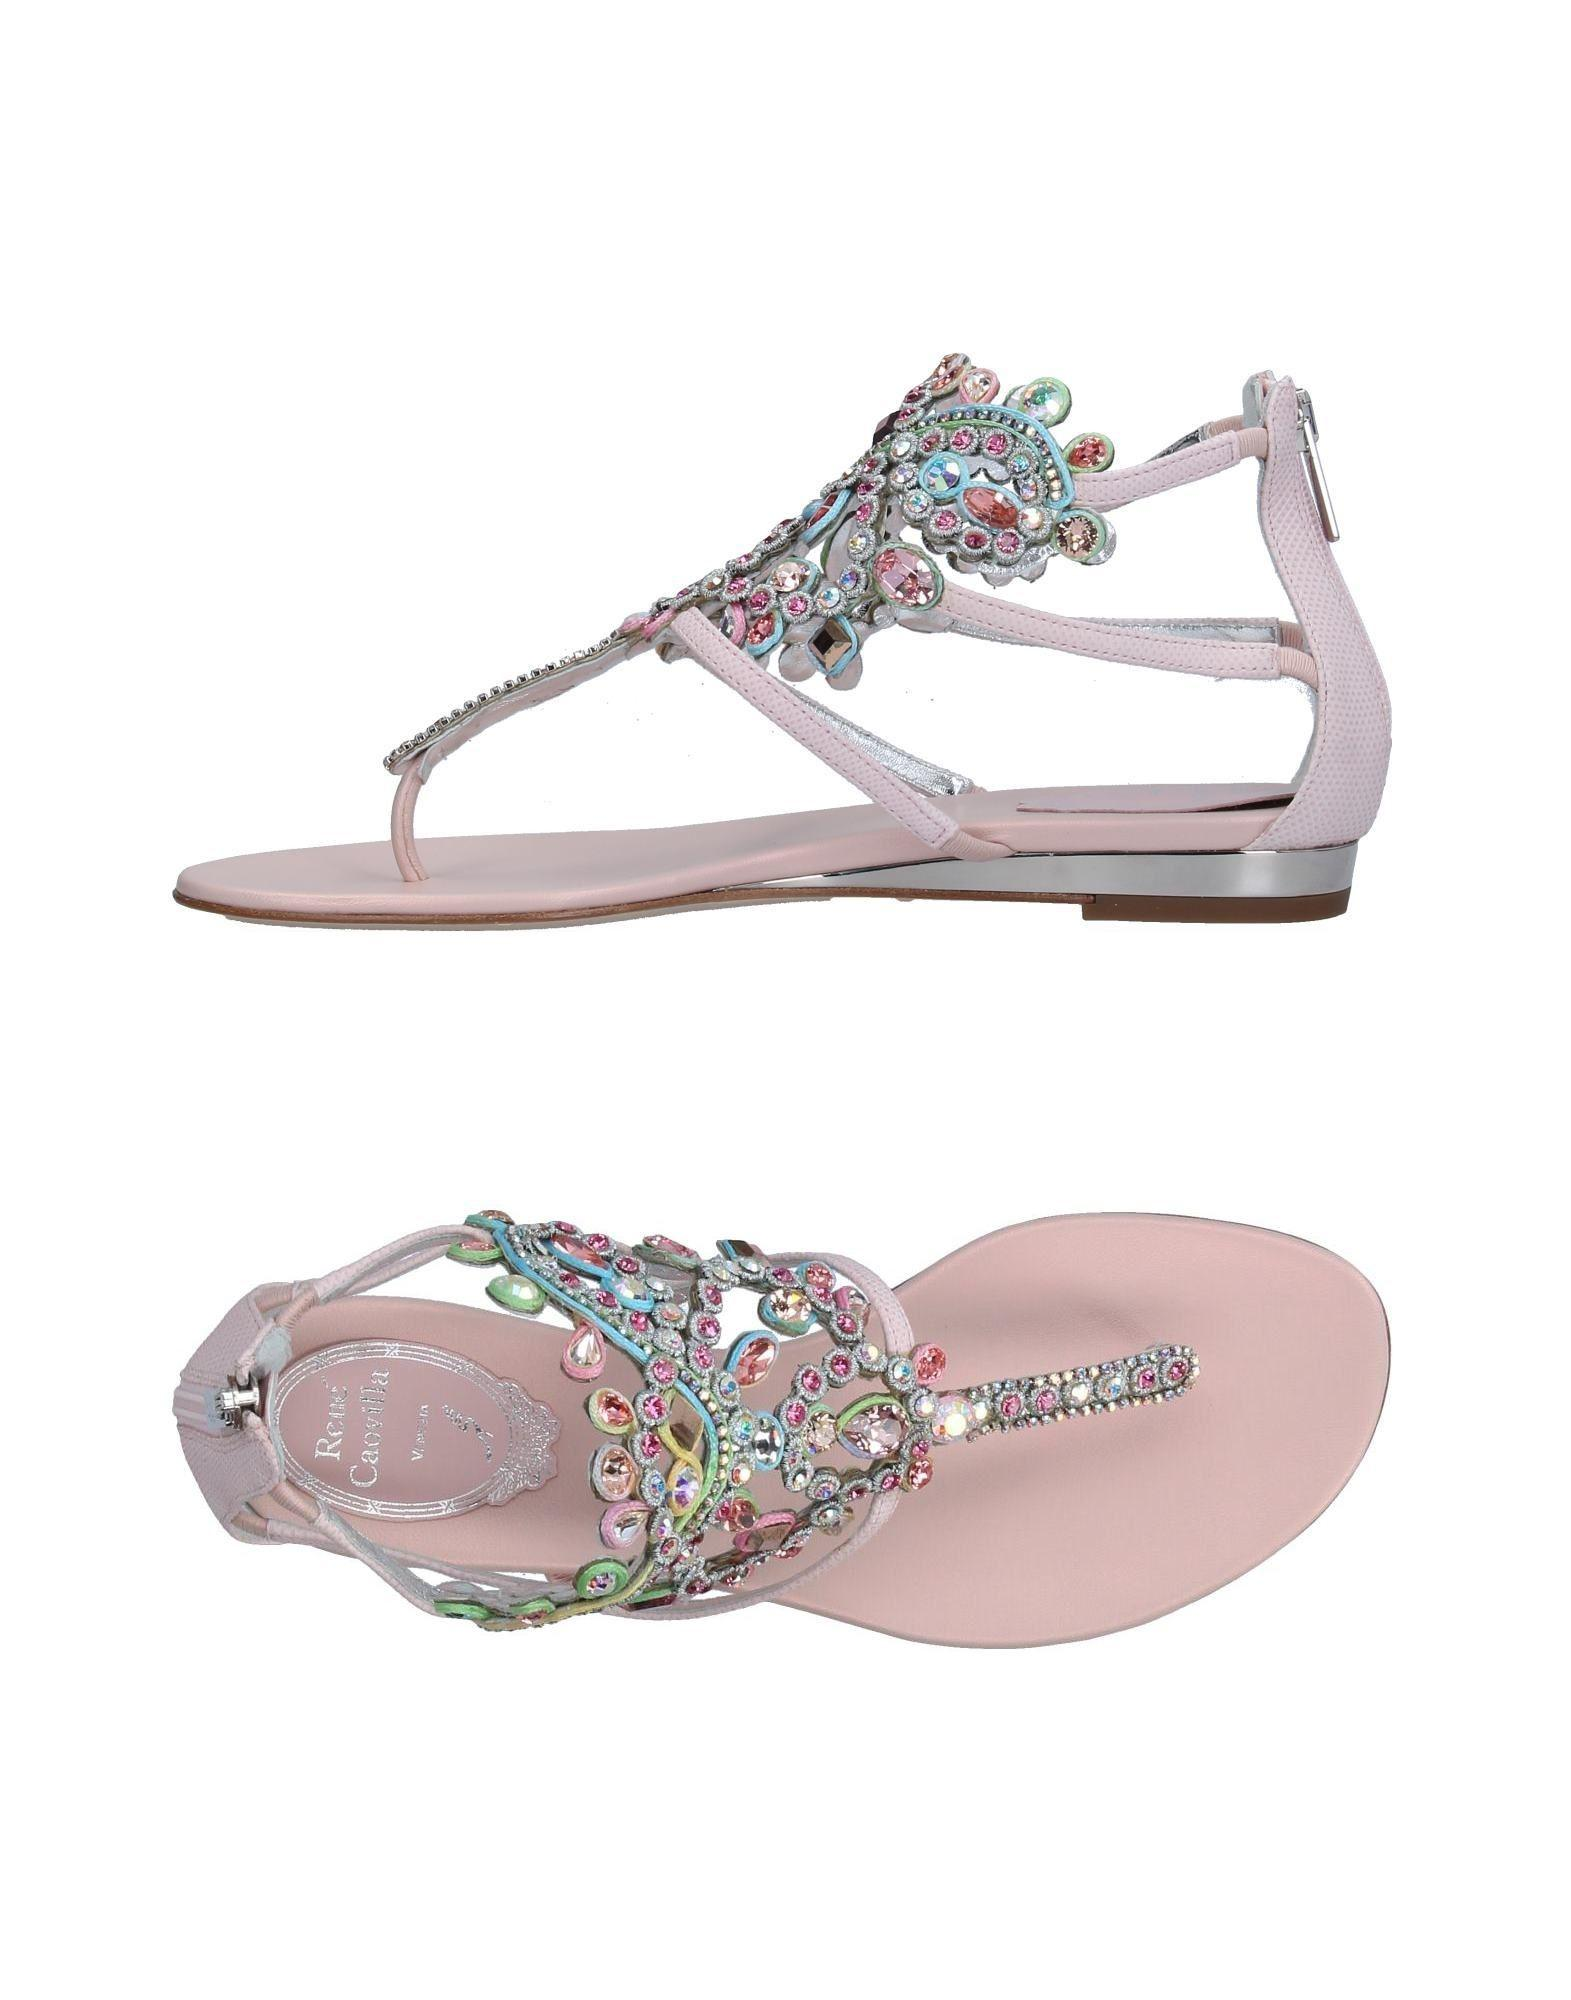 FOOTWEAR - Toe post sandals Rene Caovilla z8fi89